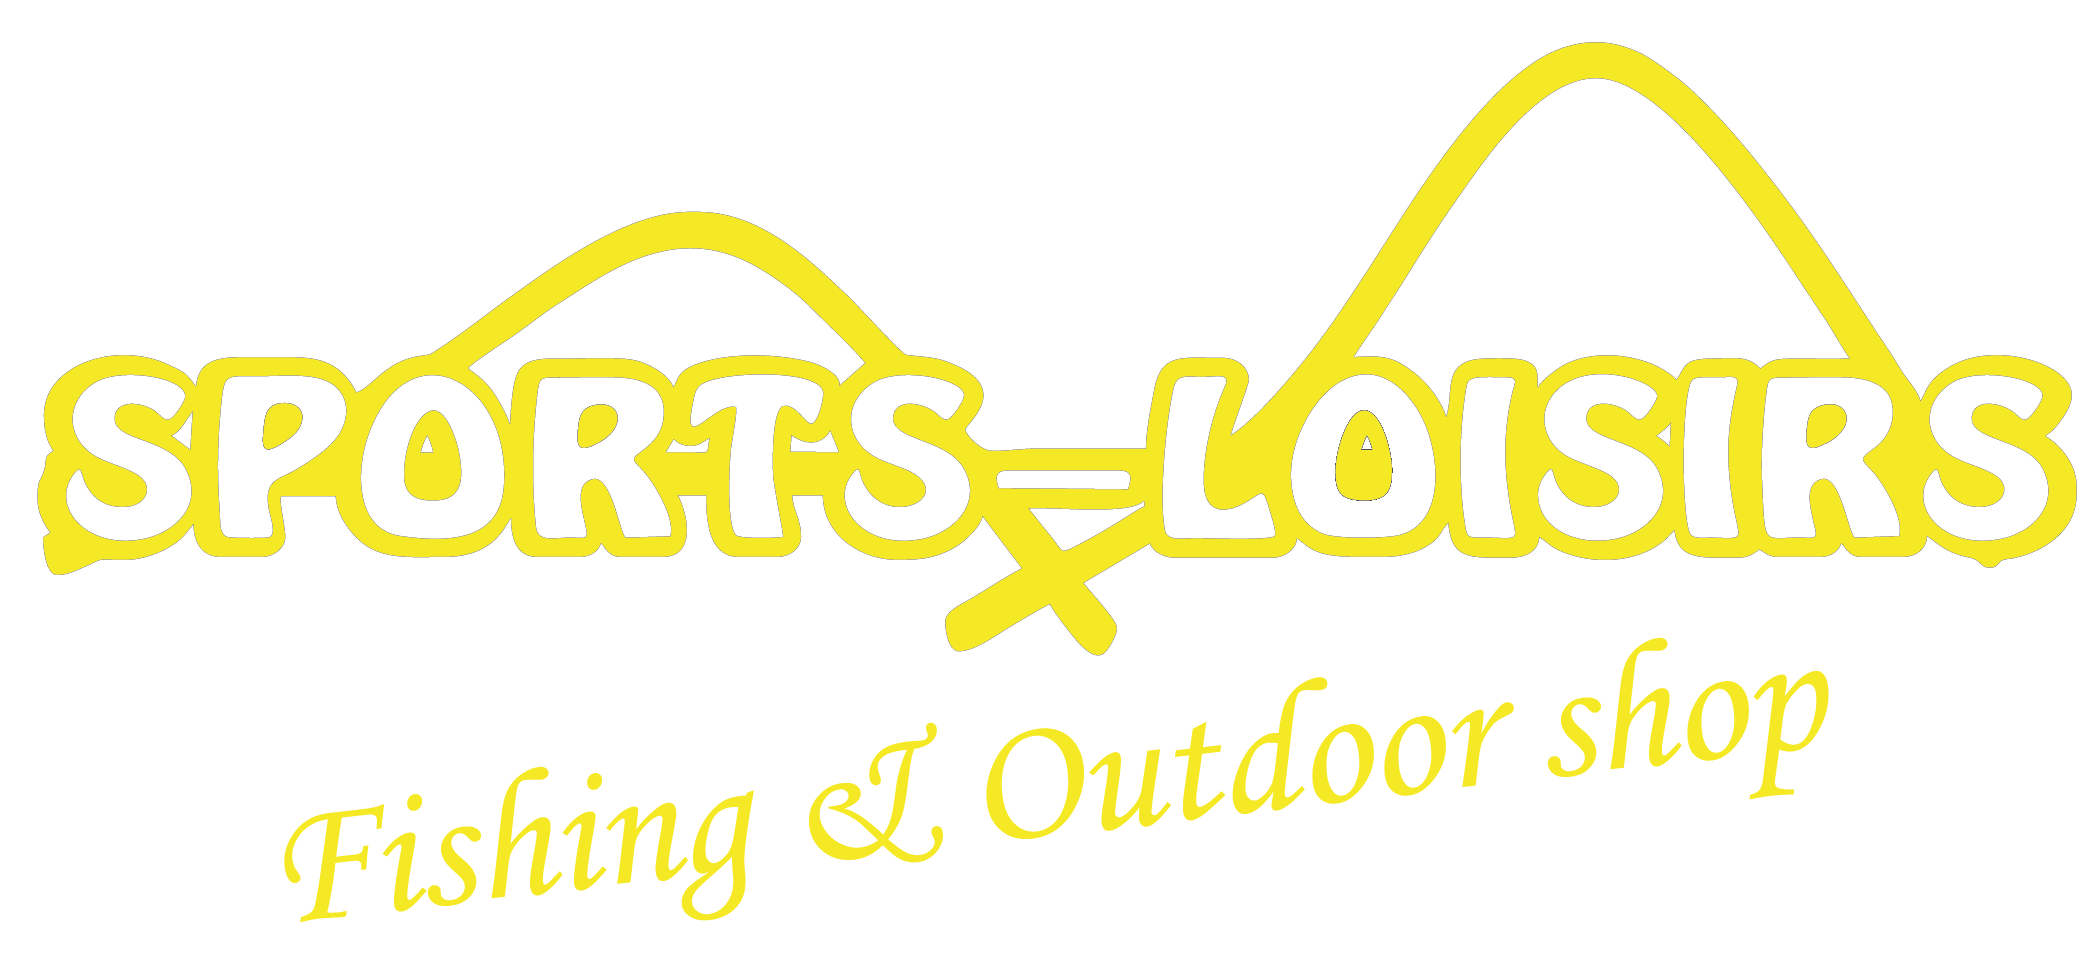 logo SL outdoor-01